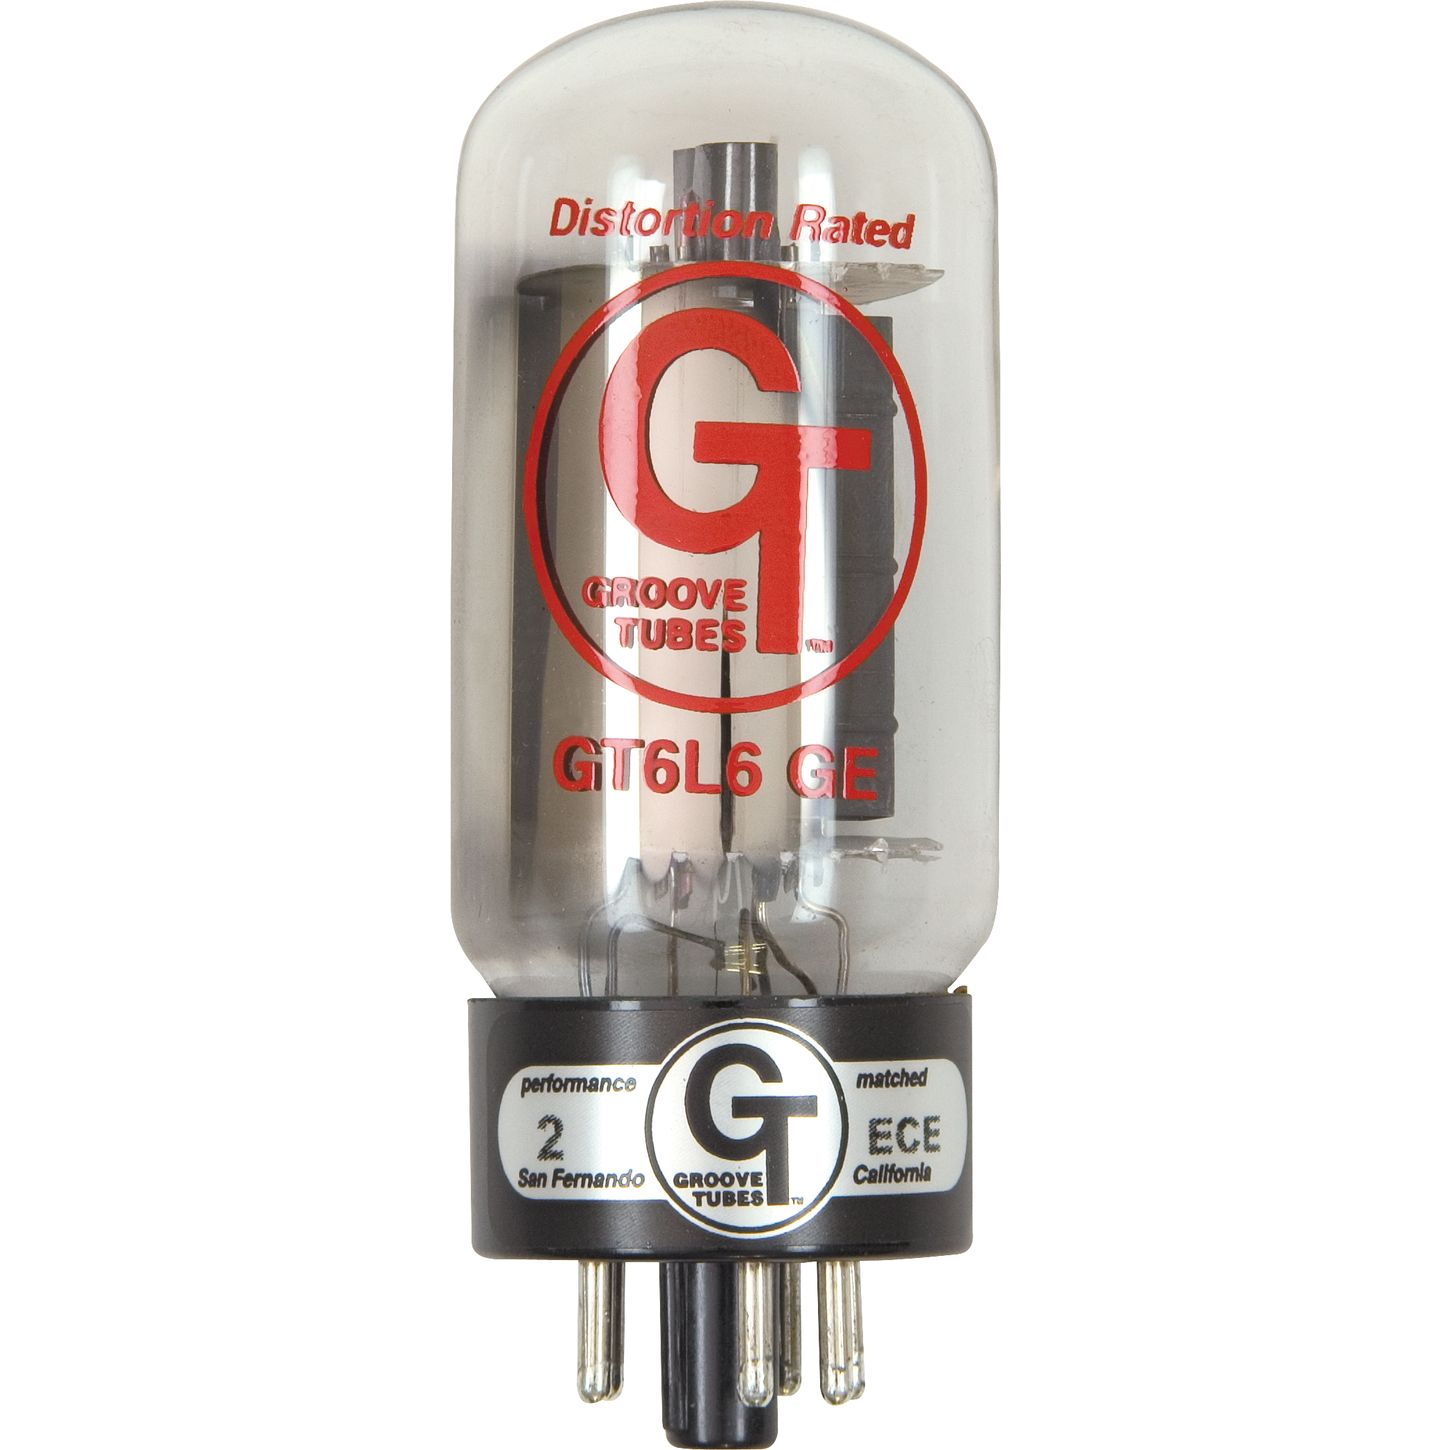 GT 6L6GC GE Tube